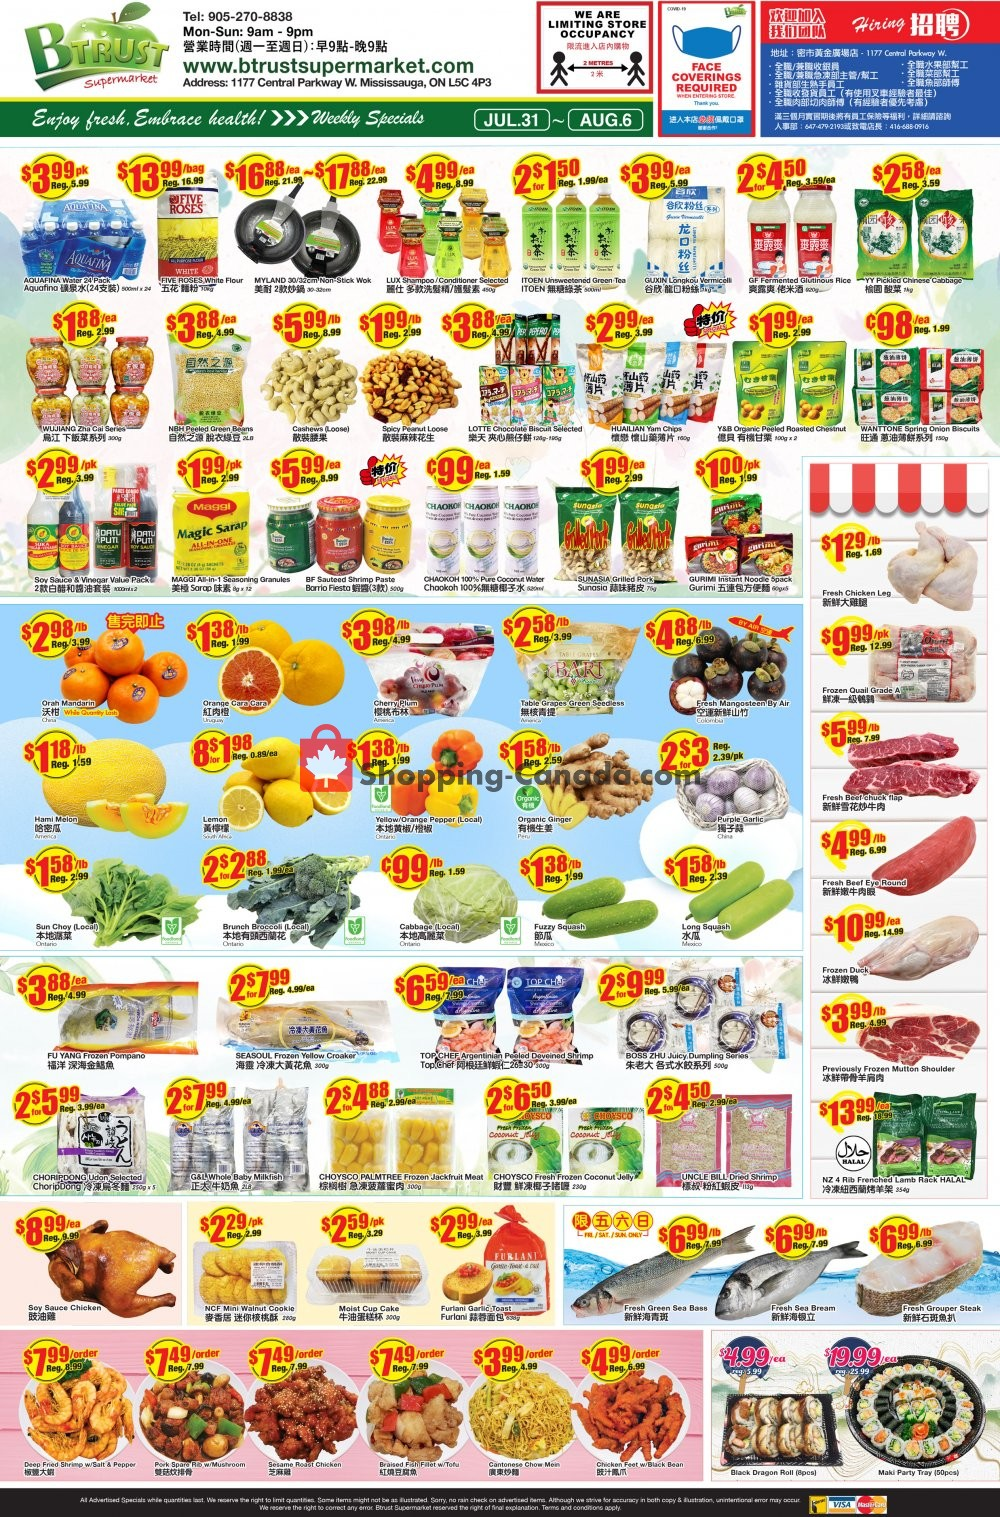 Flyer Btrust Supermarket Canada - from Friday July 31, 2020 to Thursday August 6, 2020